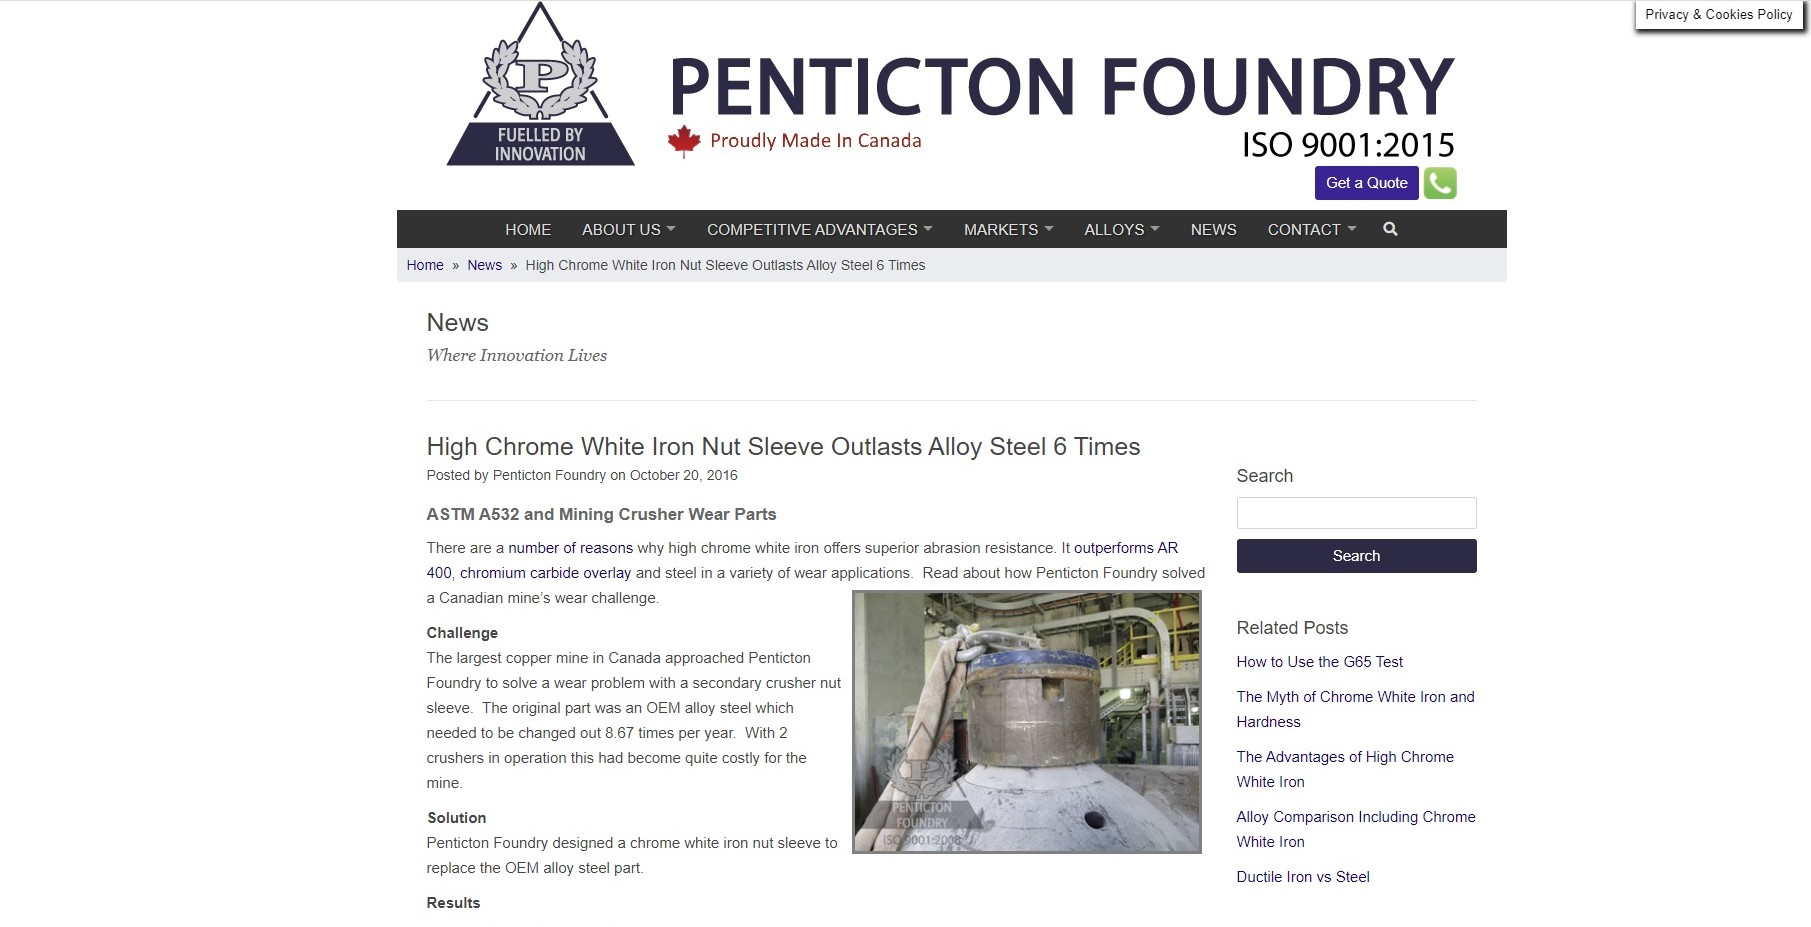 https://www.pentictonfoundry.com/news/high-chrome-white-iron-nut-sleeve-outlasts-alloy-steel-6-times/